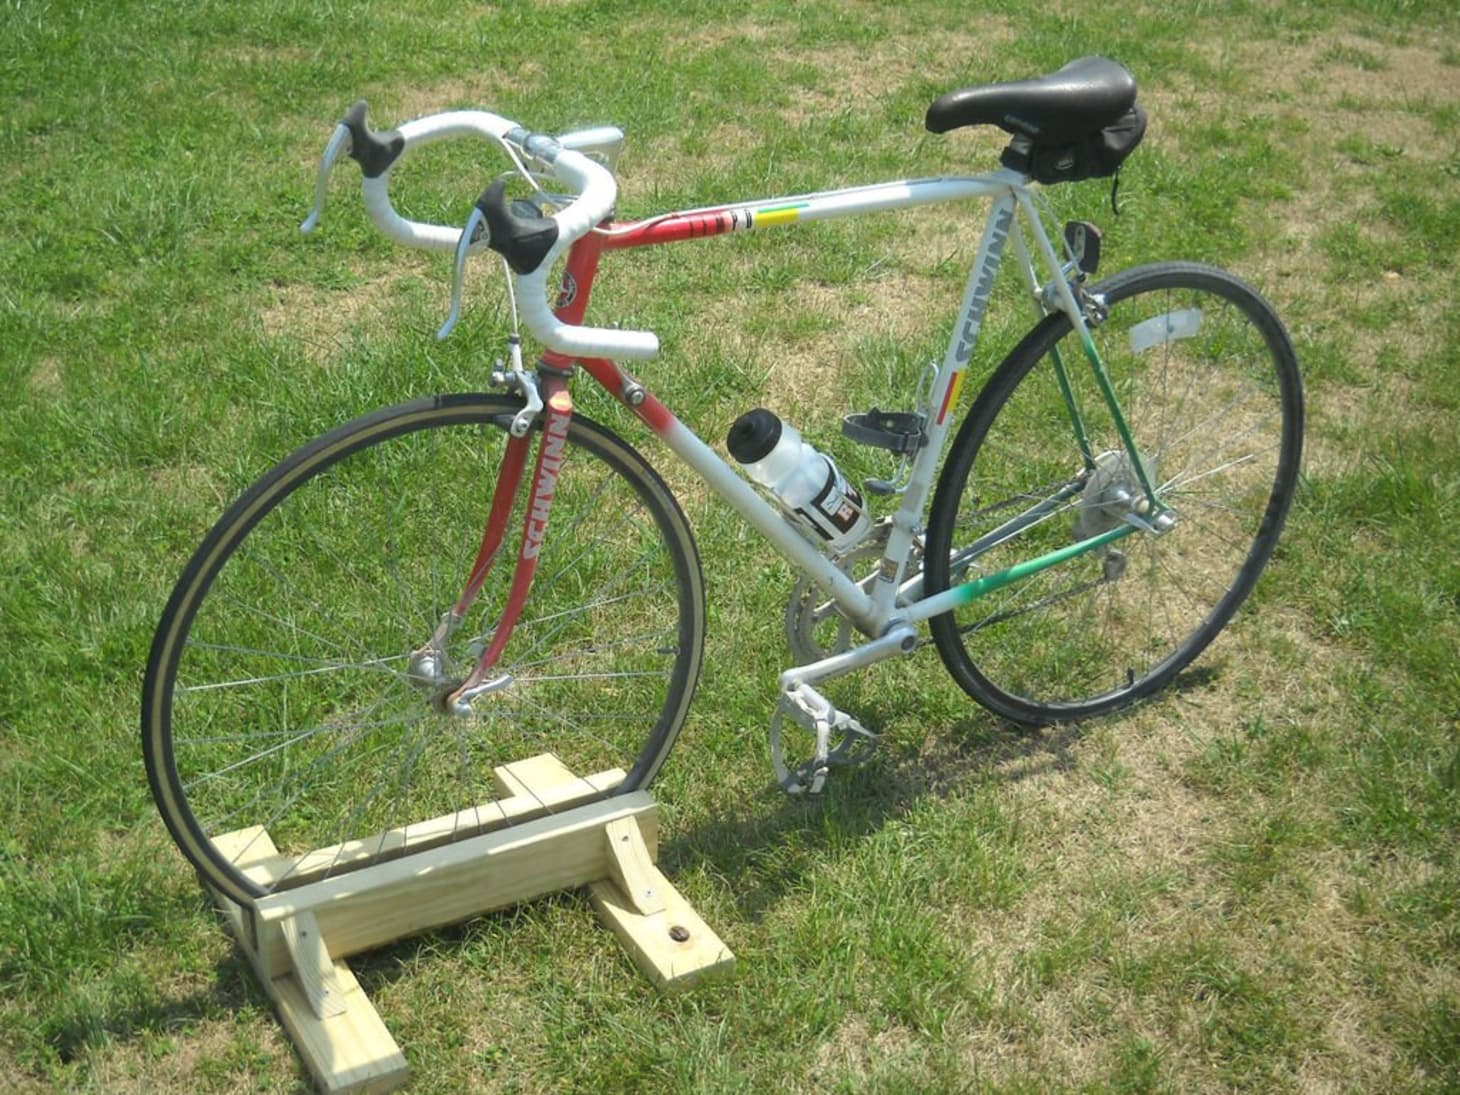 DIY Ideas: 9 Bike Stands You Can Make Yourself | Apartment